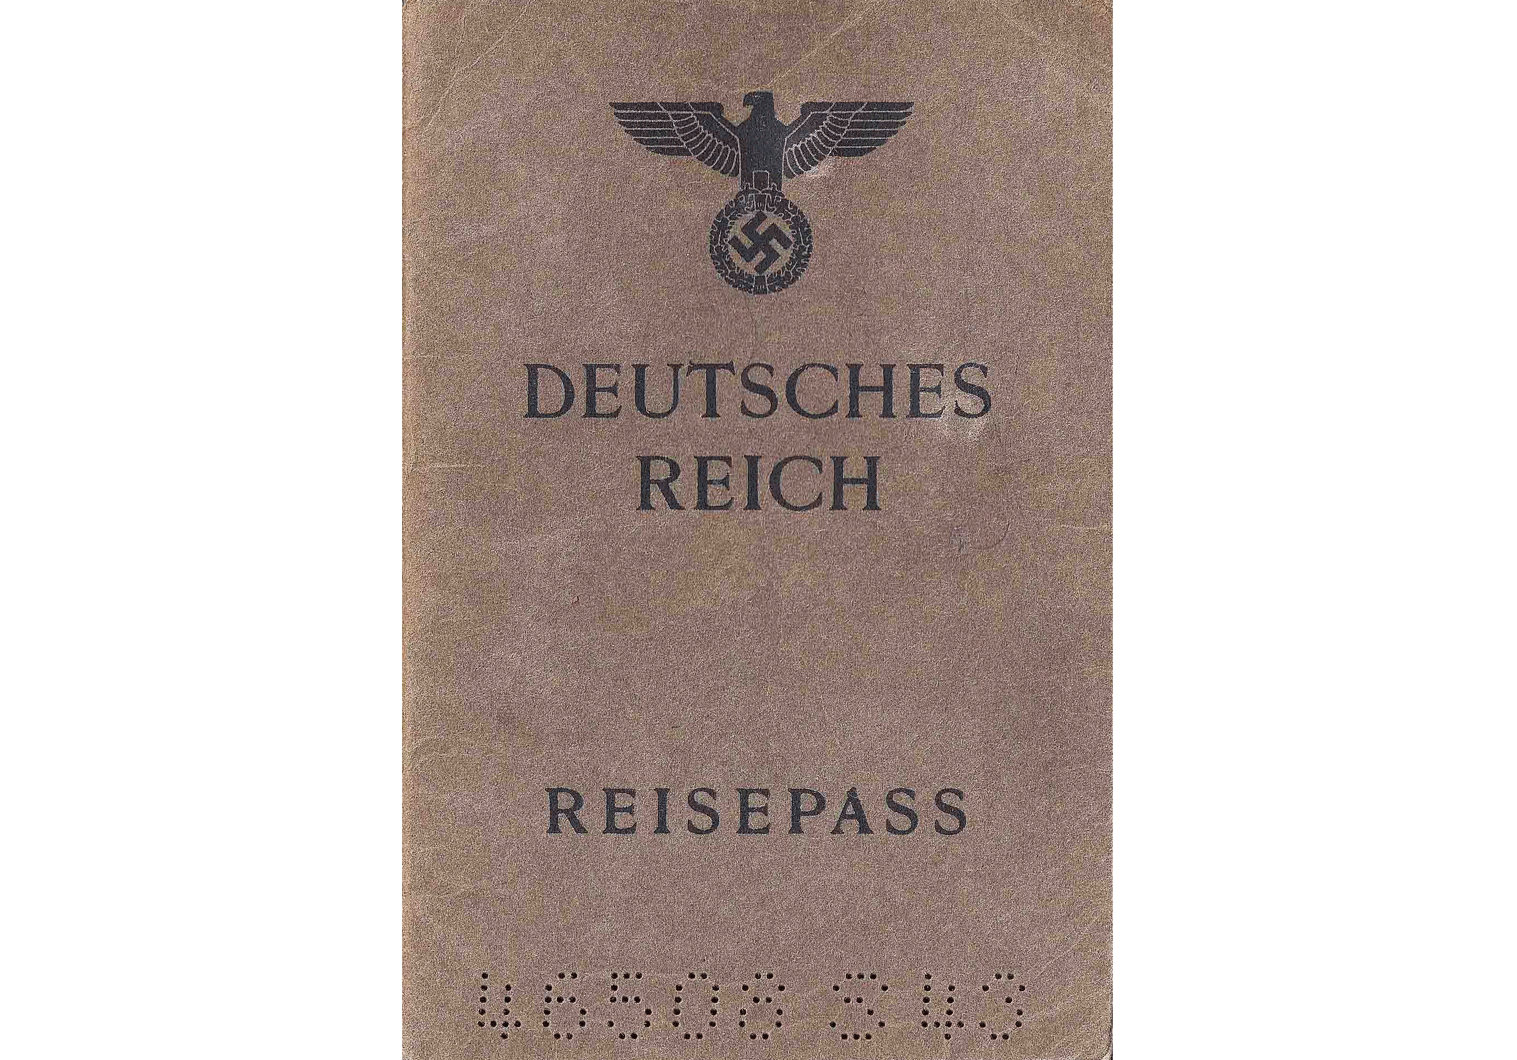 1945 German passport